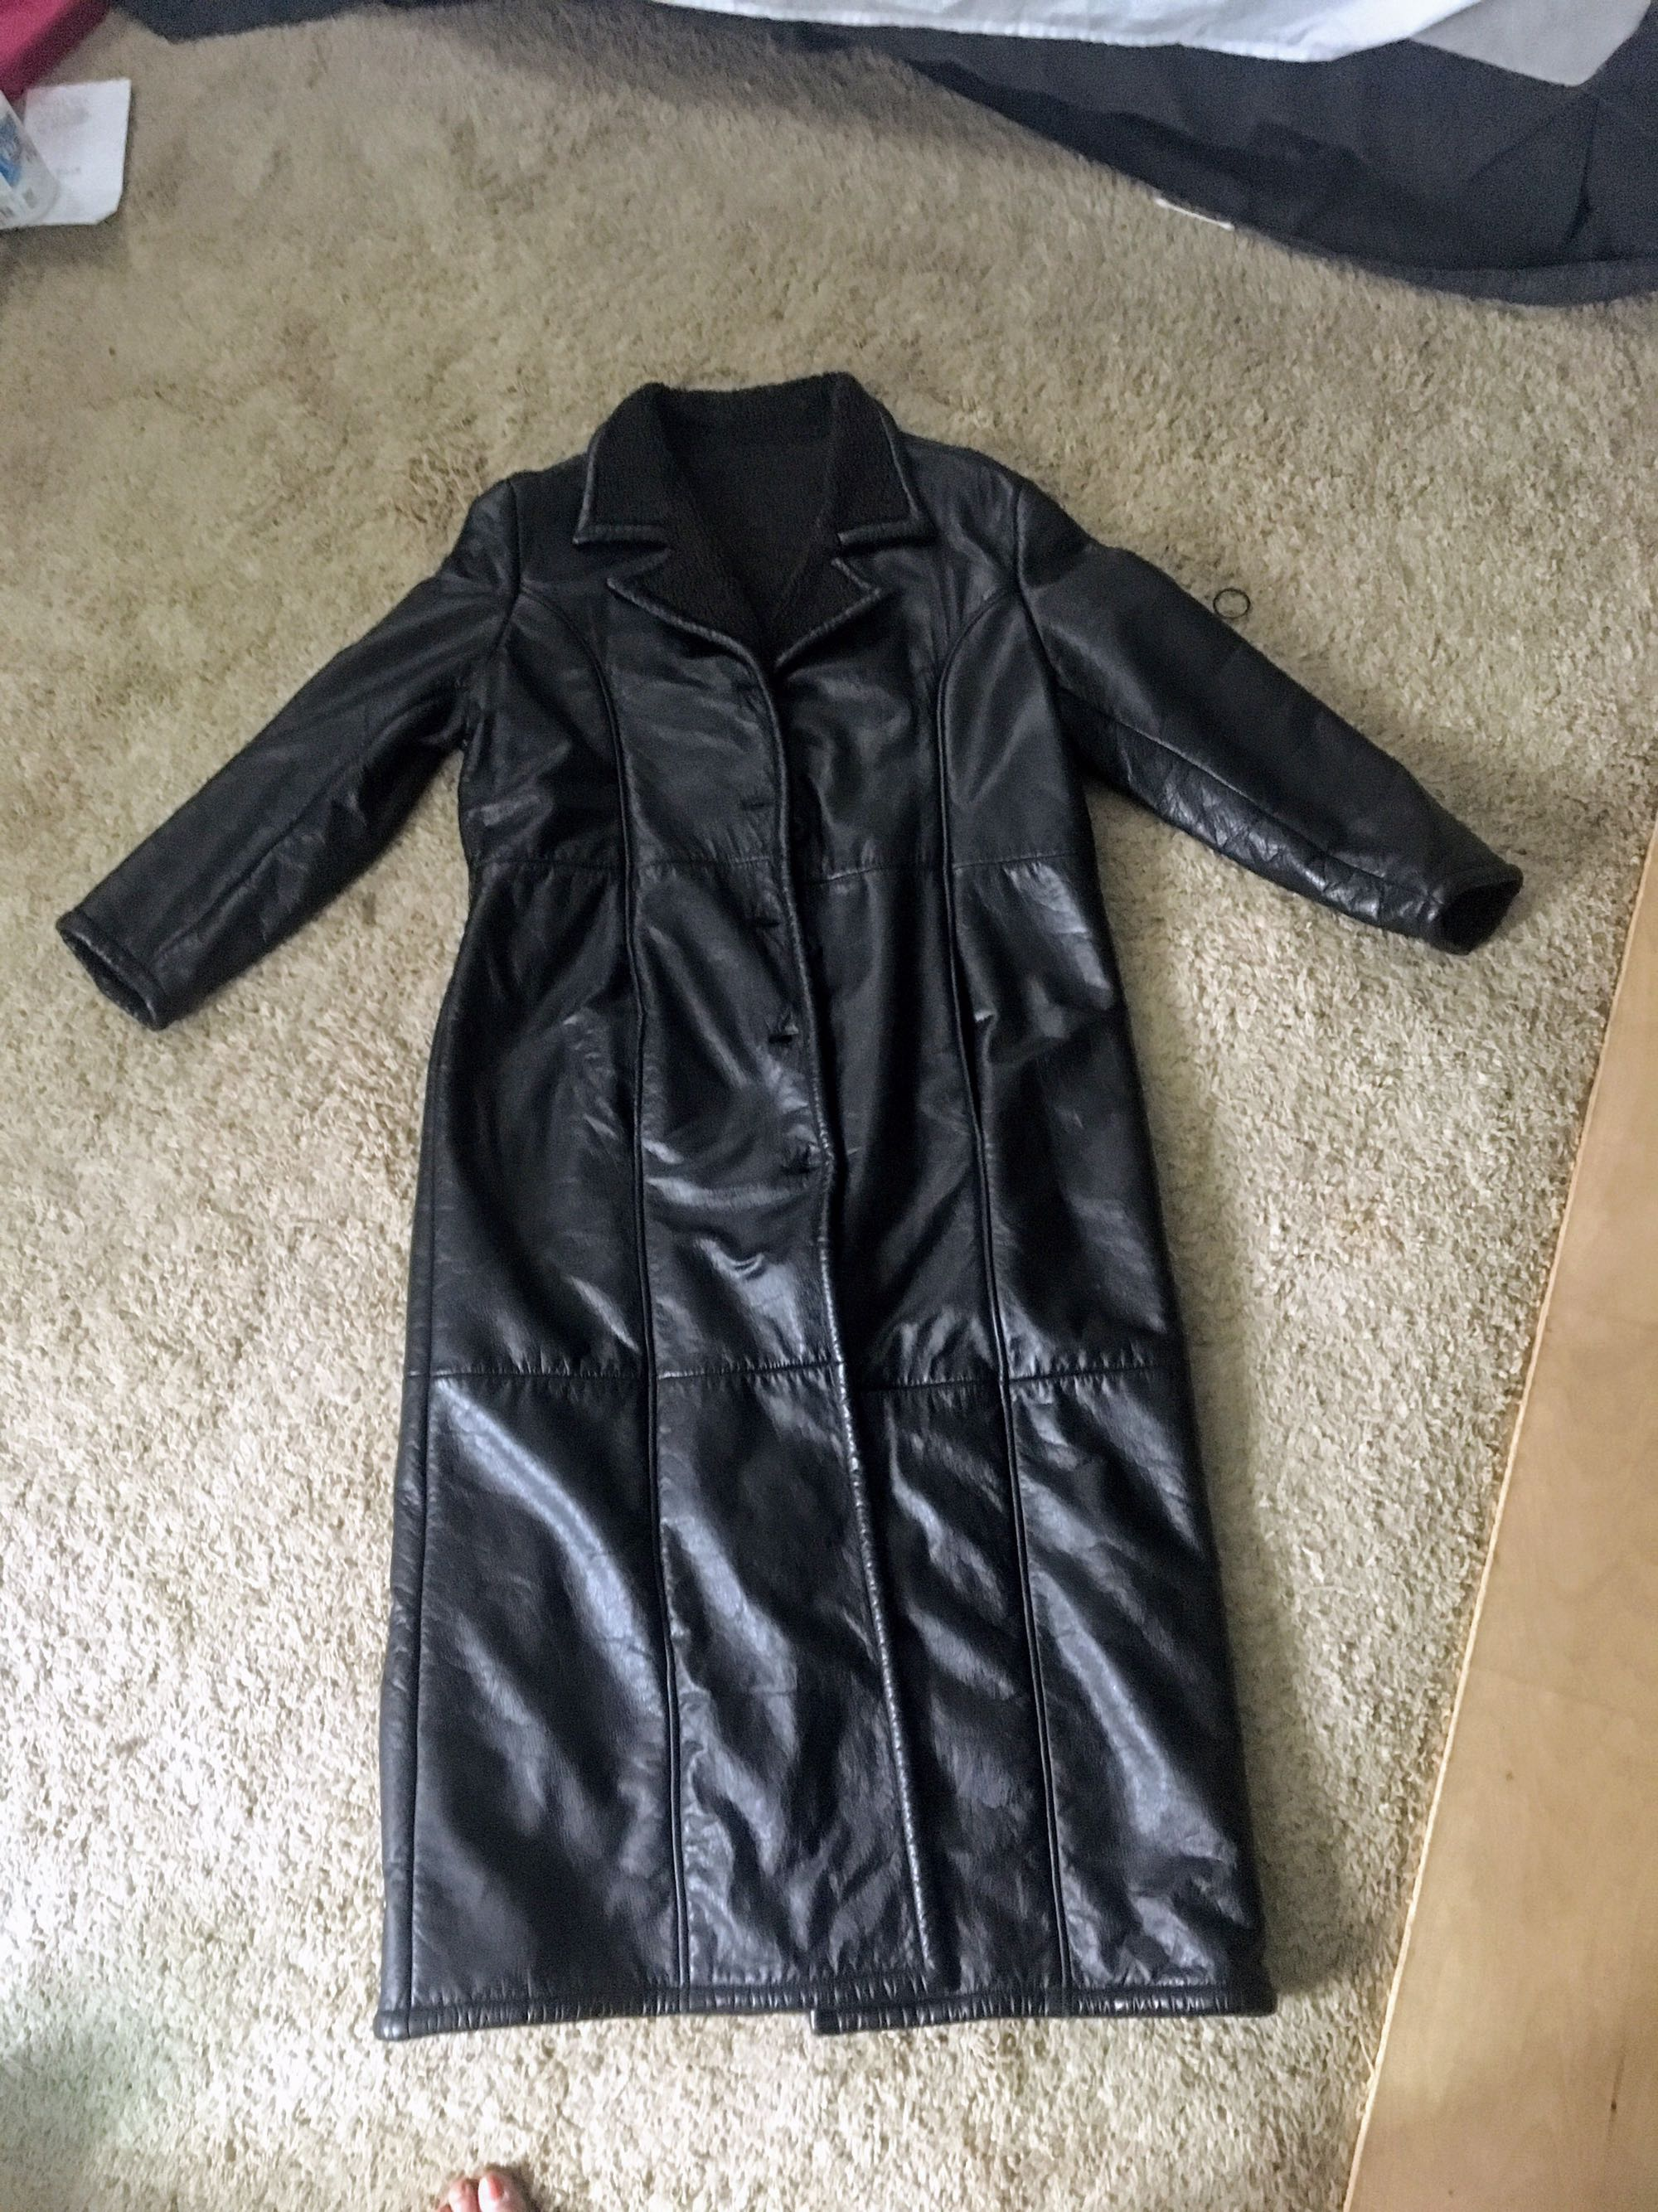 Wilson leather trench coat